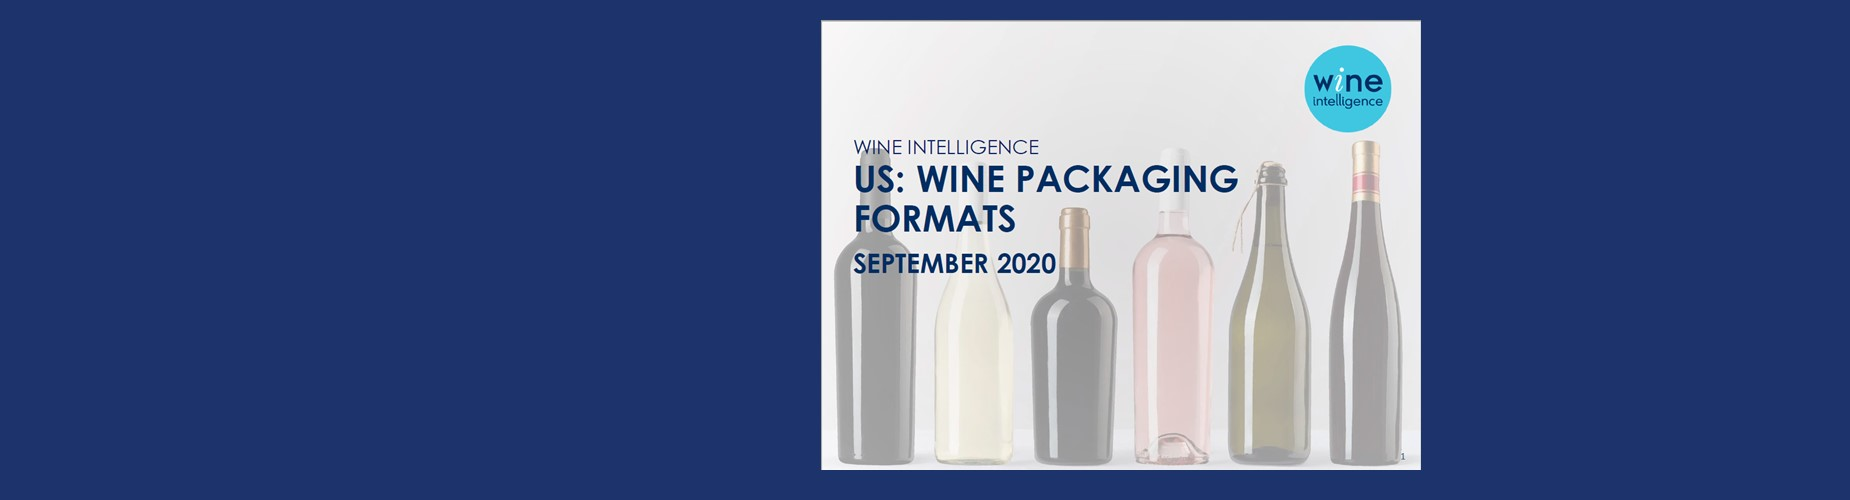 us packaging 2020 - About reports shop